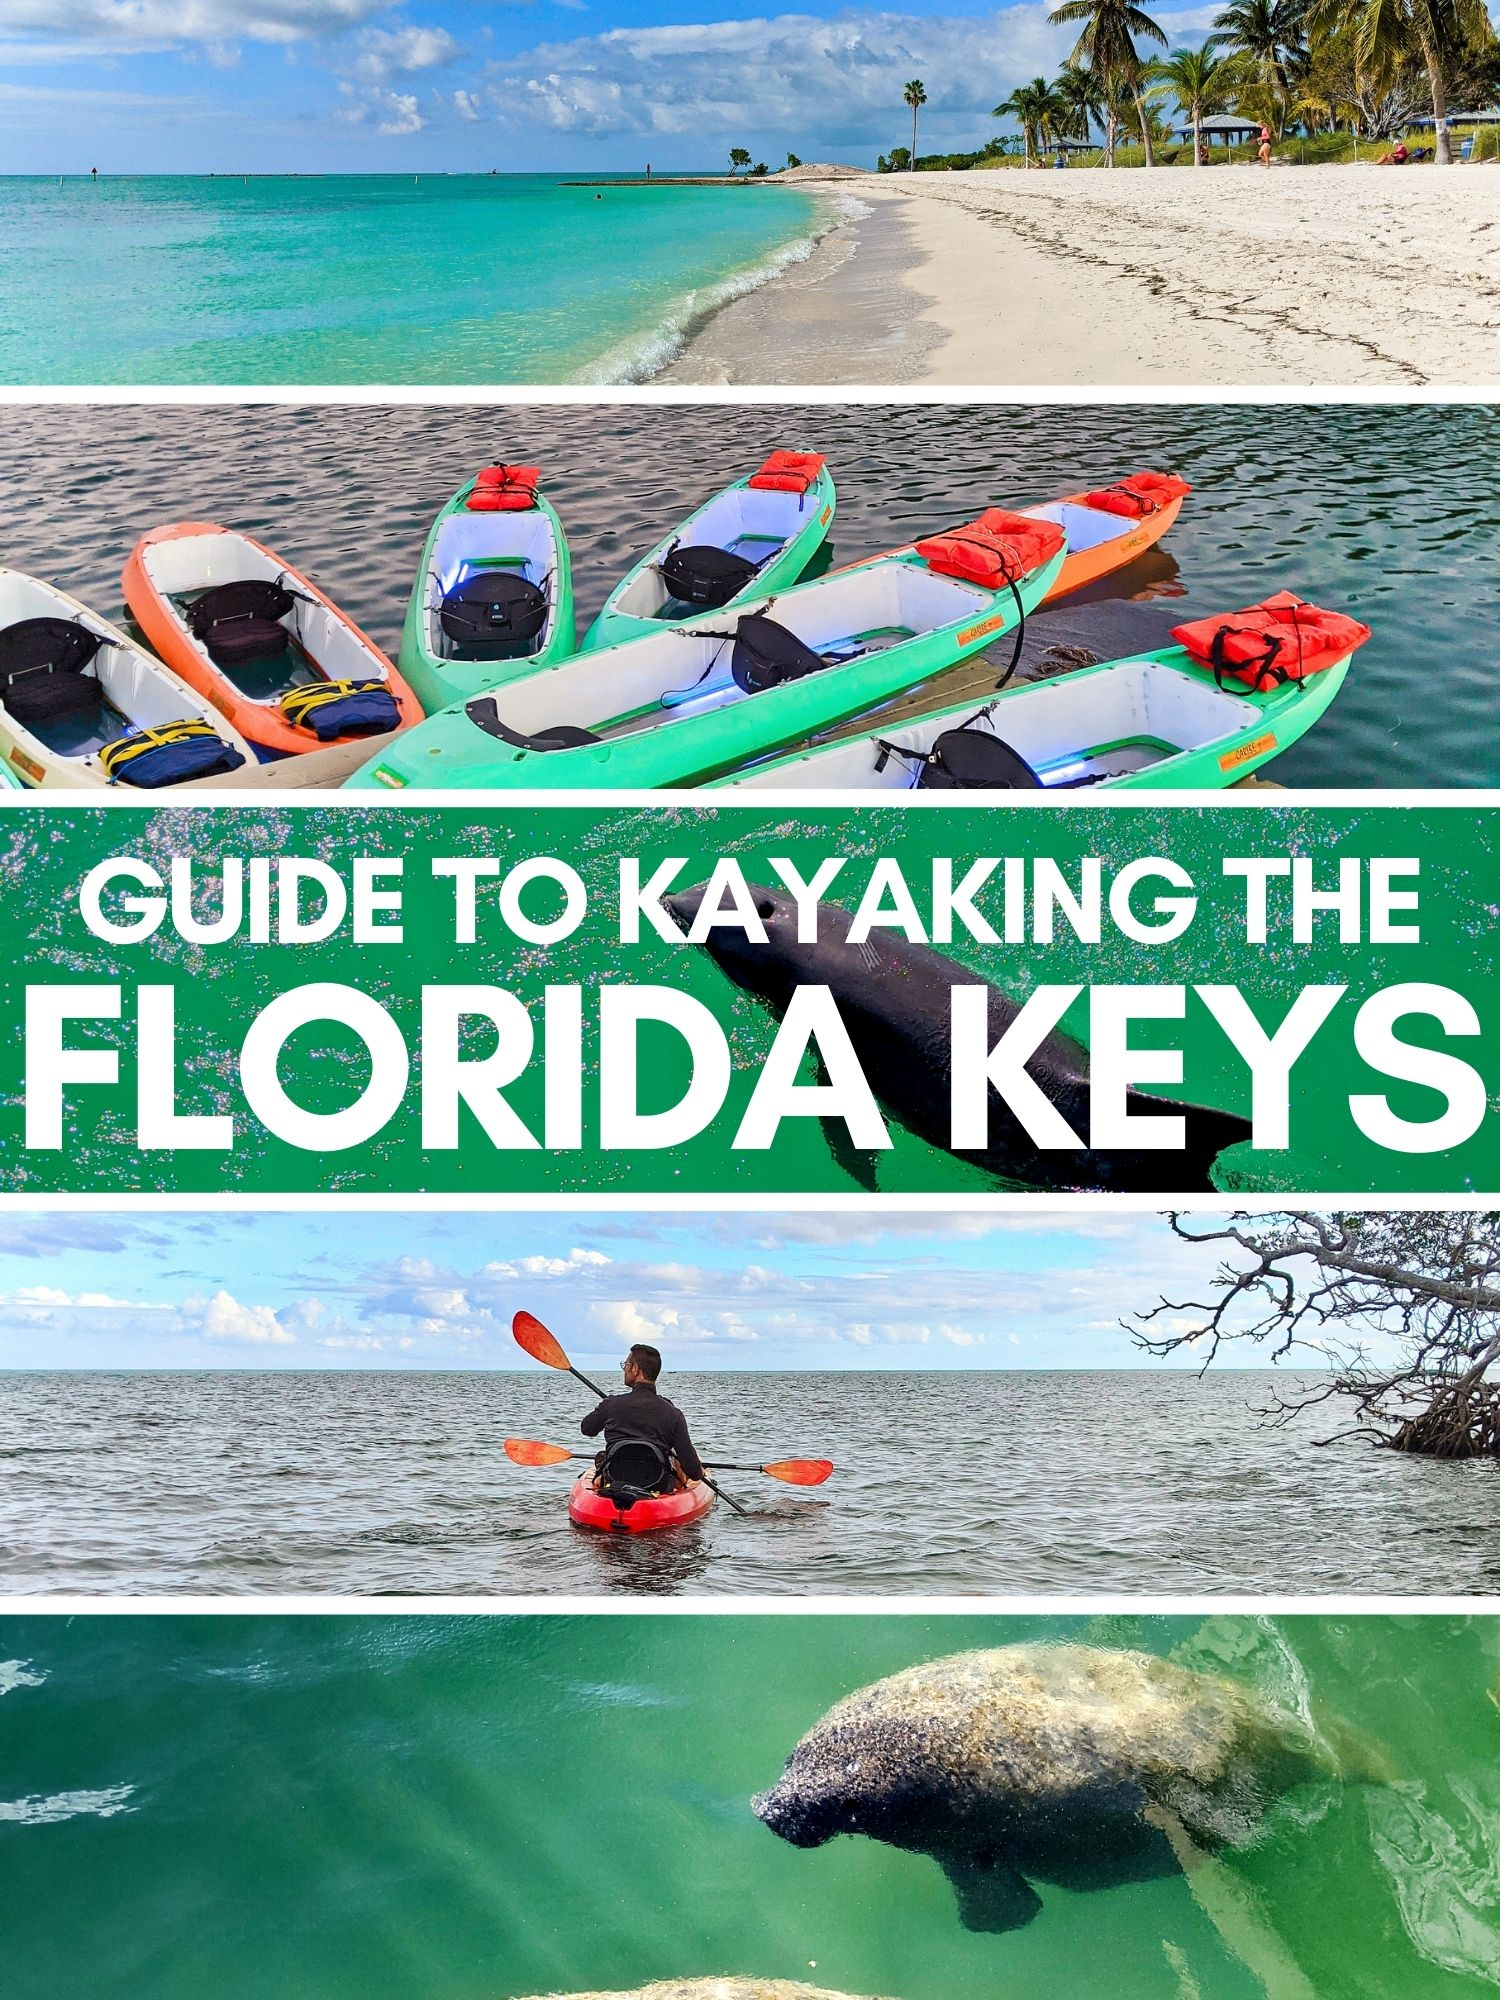 Kayaking in the Florida Keys is beautiful and unique, a once in a lifetime paddling opportunity. Best places to kayak from Key West to Key Largo, launch sites, paddling routes and wildlife viewing.